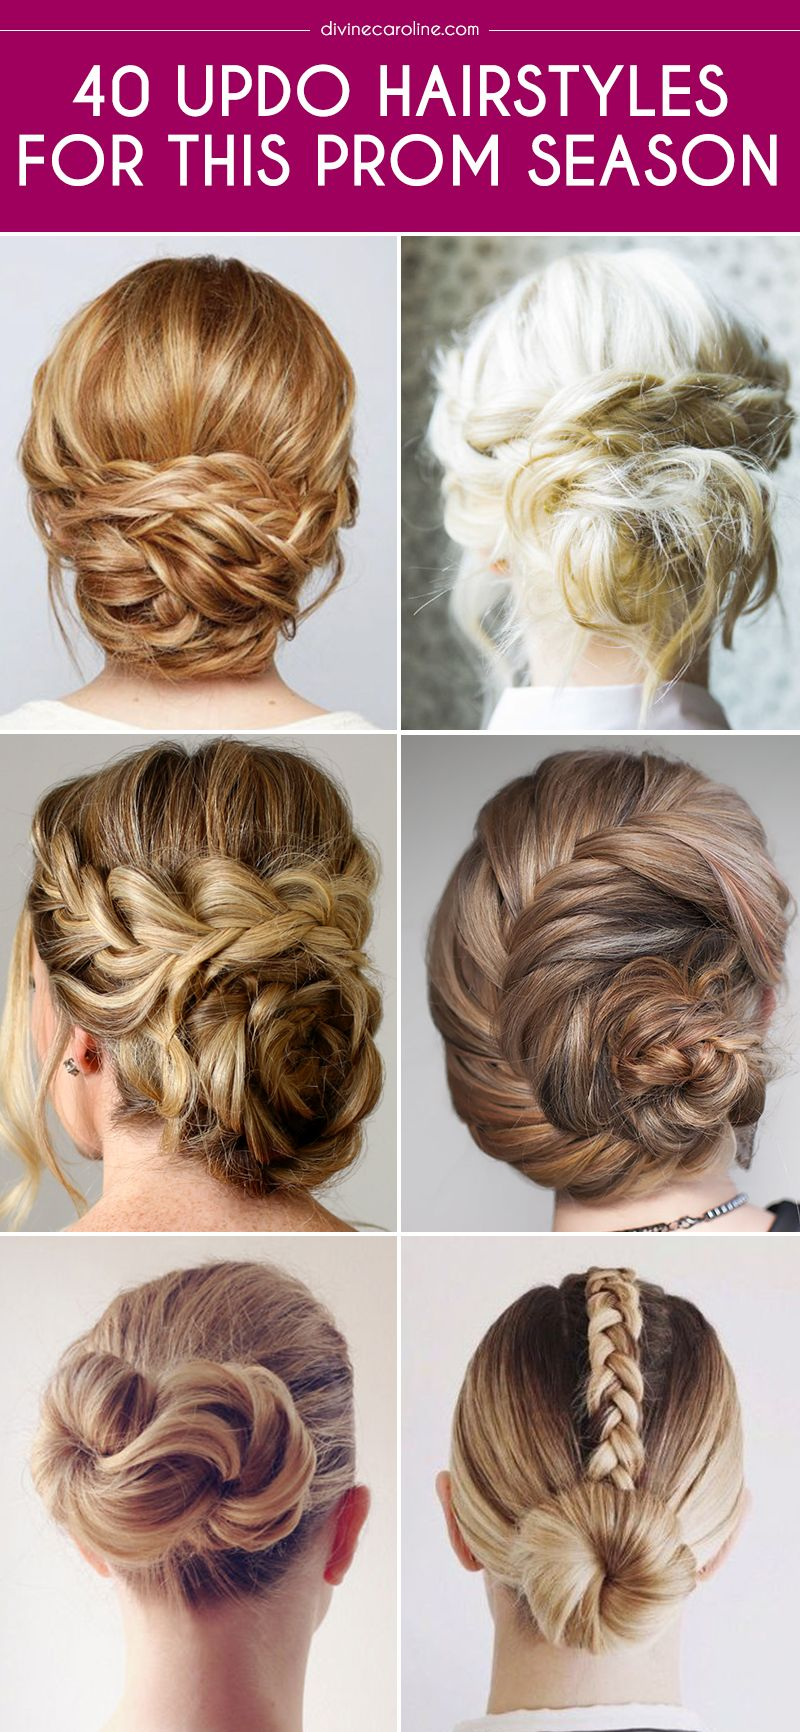 updo hairstyles for this prom season big night updo and prom